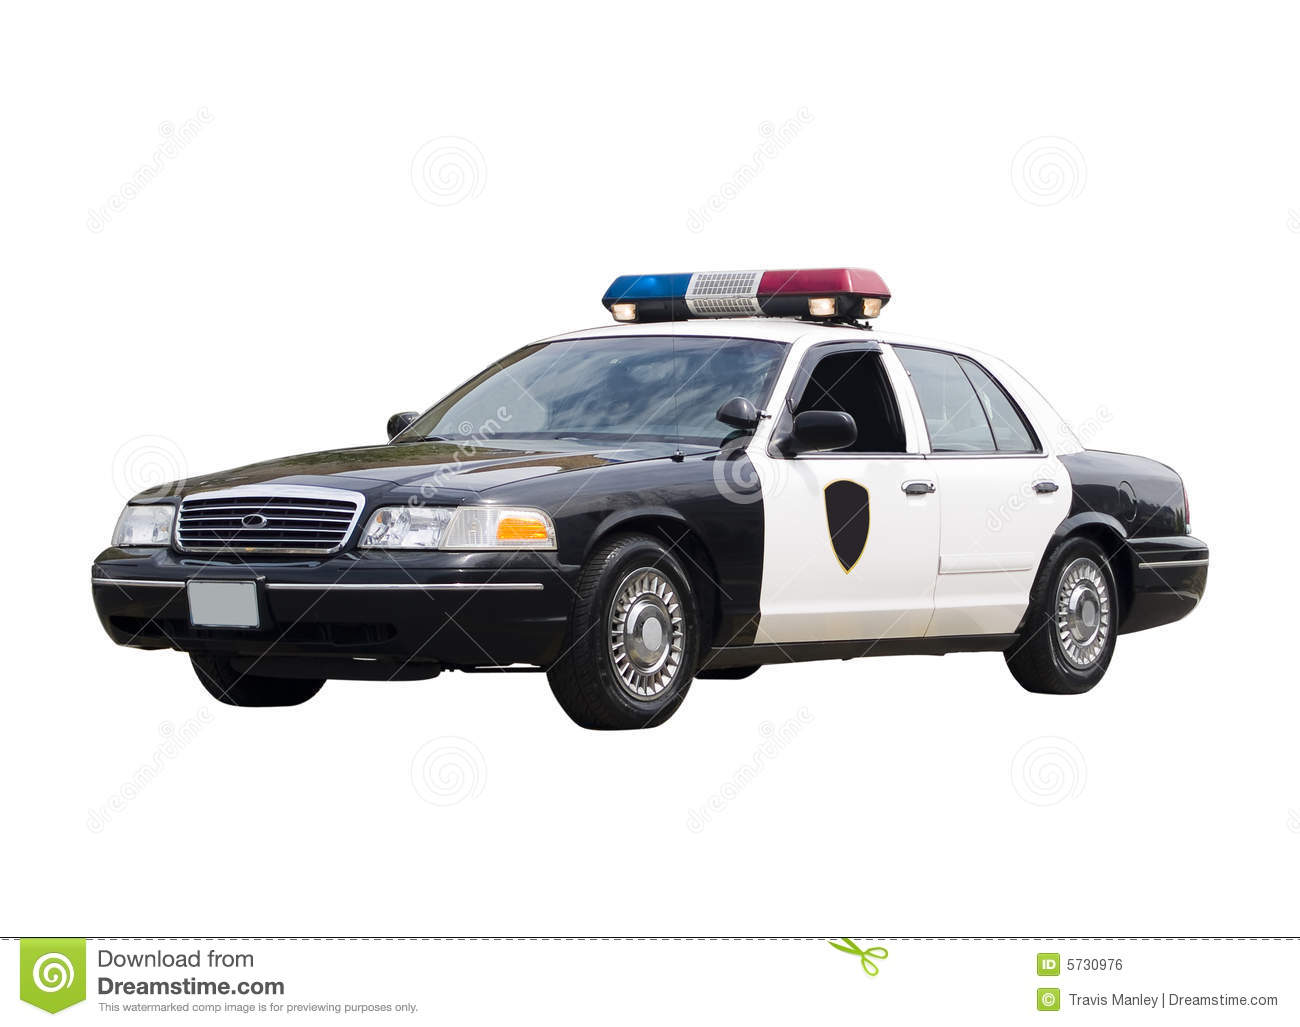 Police Car Royalty Free Stock Image - Image: 5730976